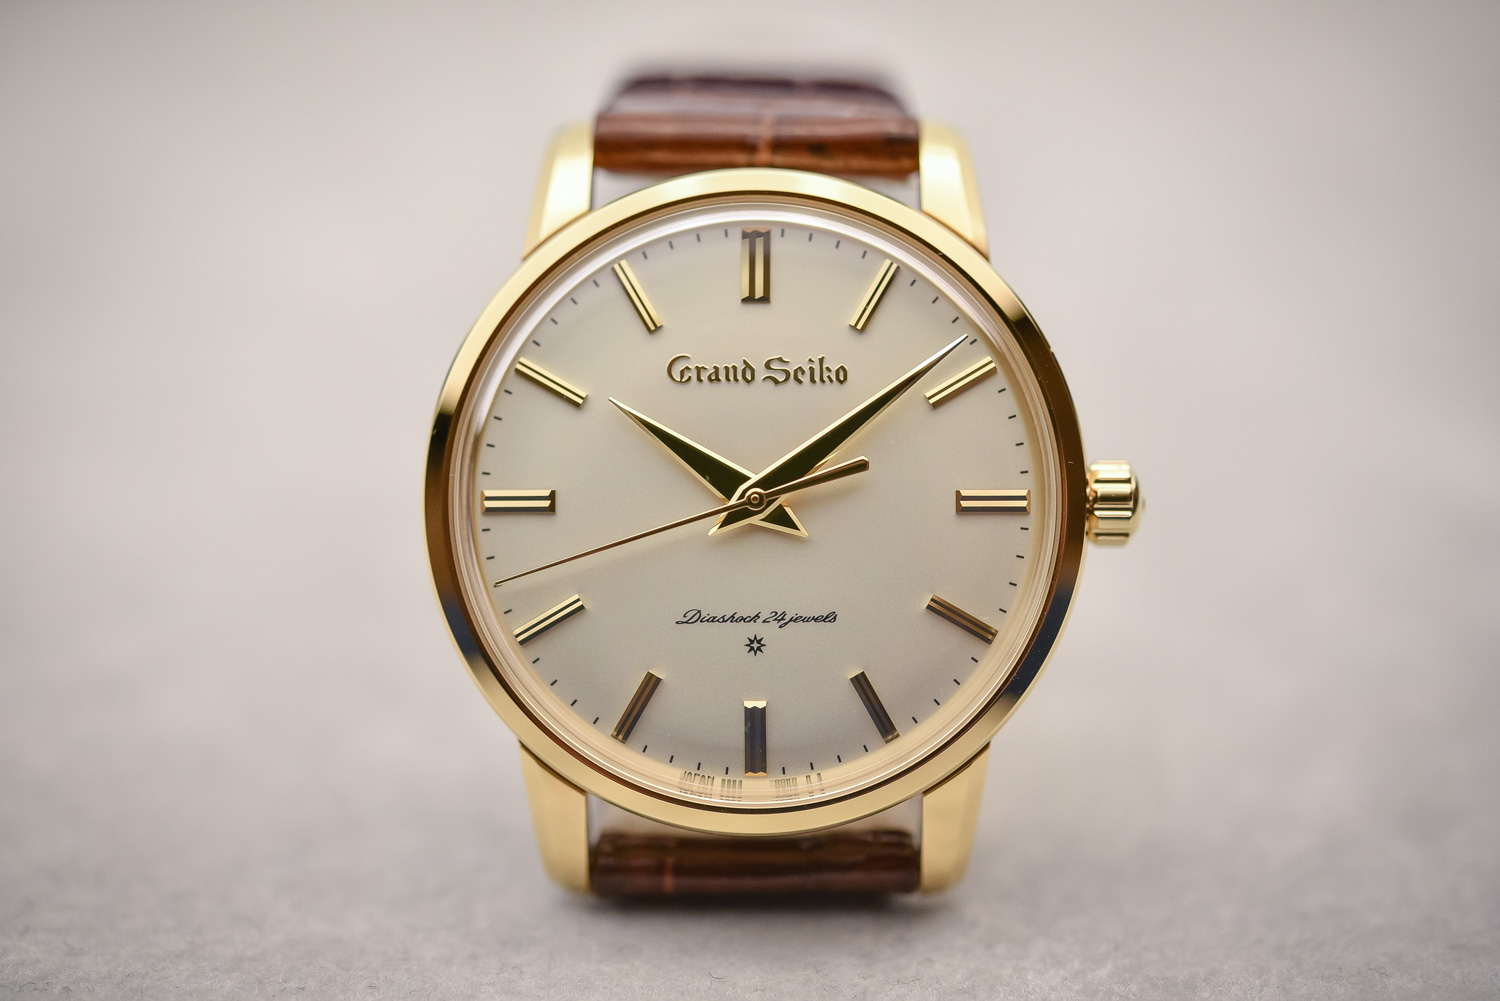 Grand Seiko reedition first - Top 10 Baselworld 2017